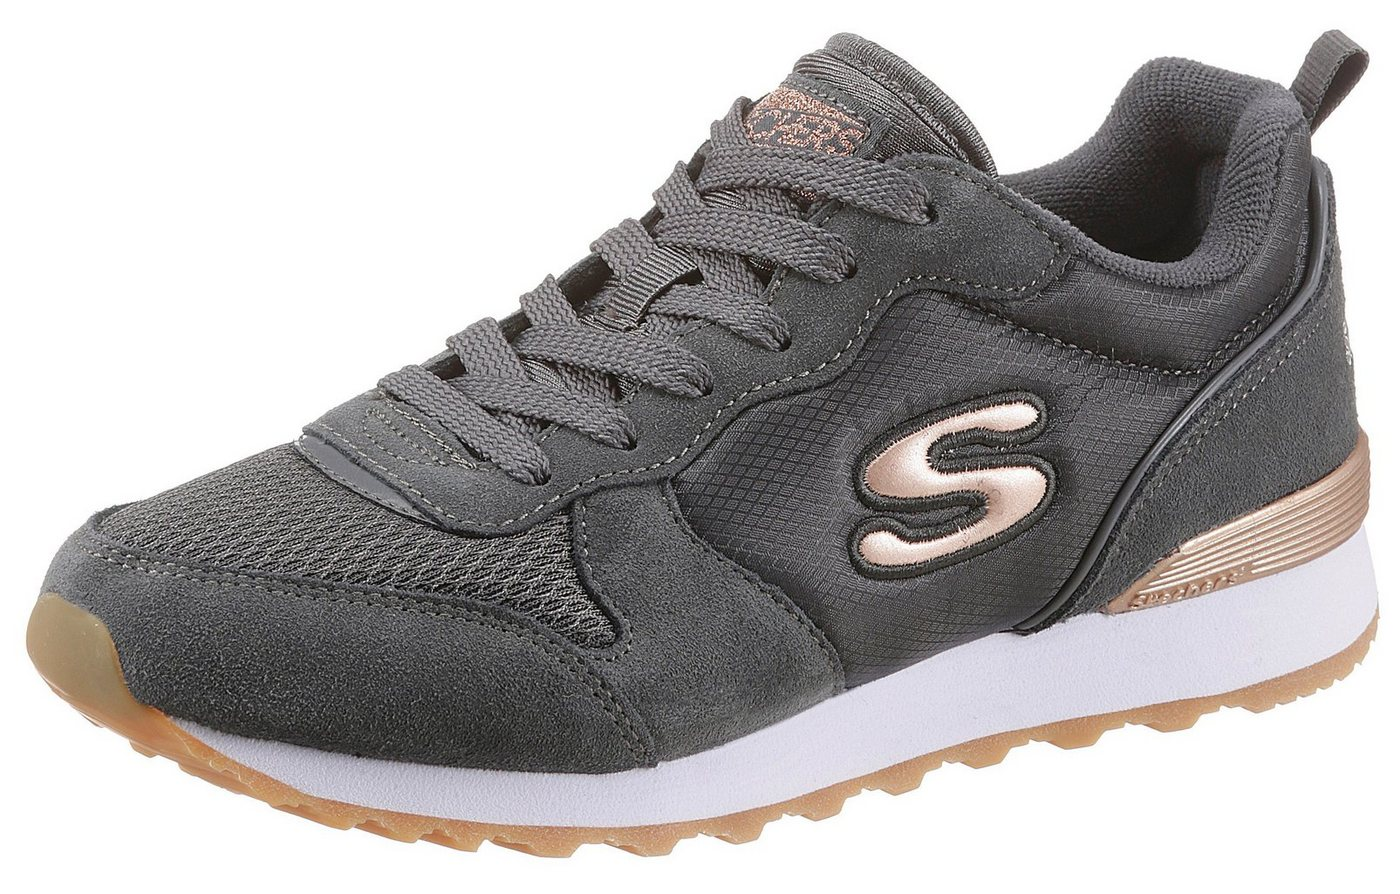 Skechers »GoldN Gurl« Sneaker mit Memory Foam von Skechers